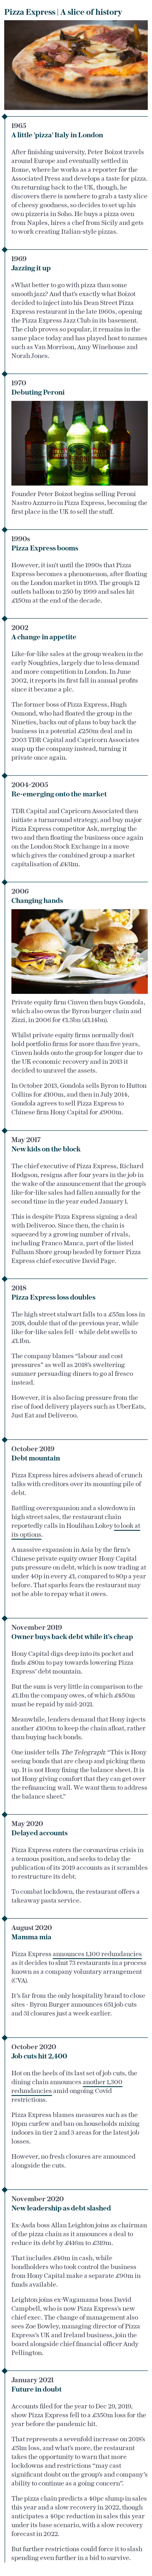 Pizza Express: A slice of history